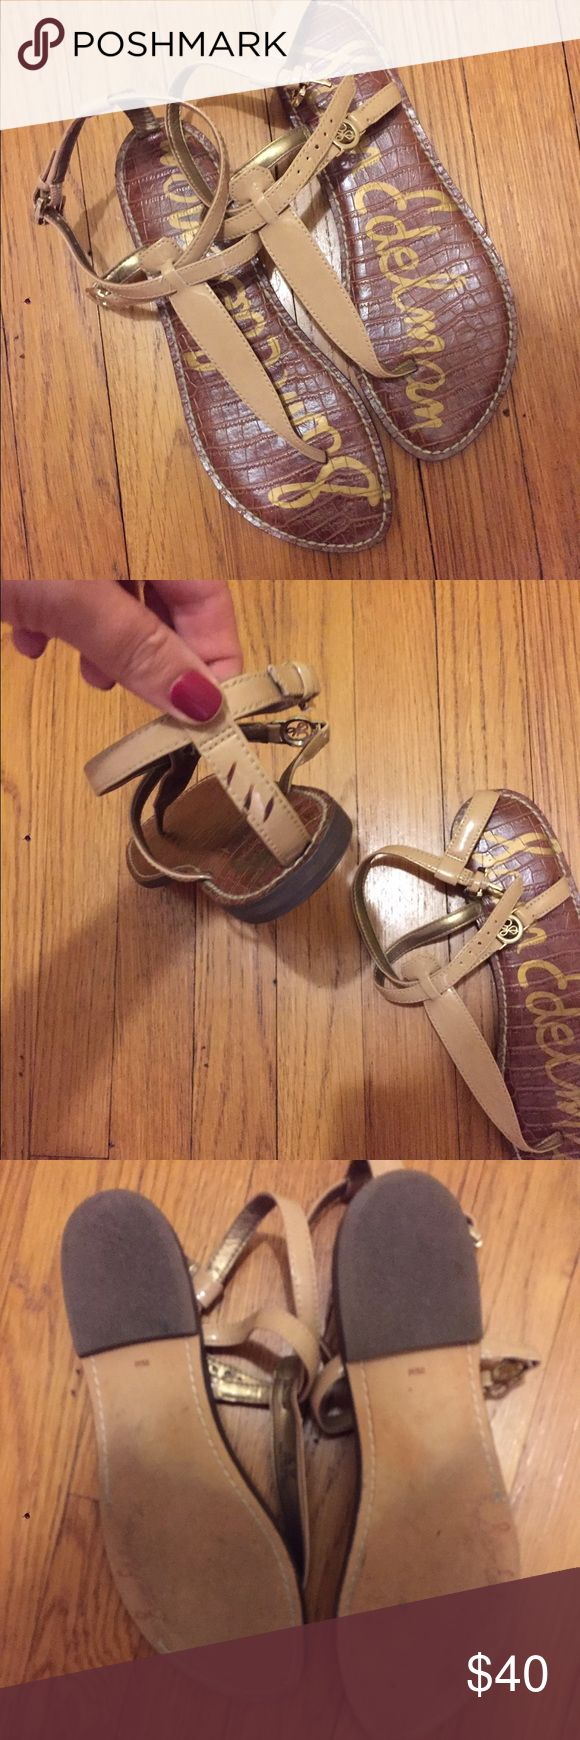 Sam Edelman Galia Sandals -- Like Sam Edelman Gigi Size 9.5, worn three times. Great shape, small scuff on back. Bought in spring 2016 at Bloomingdale's. Sam Edelman Shoes Sandals